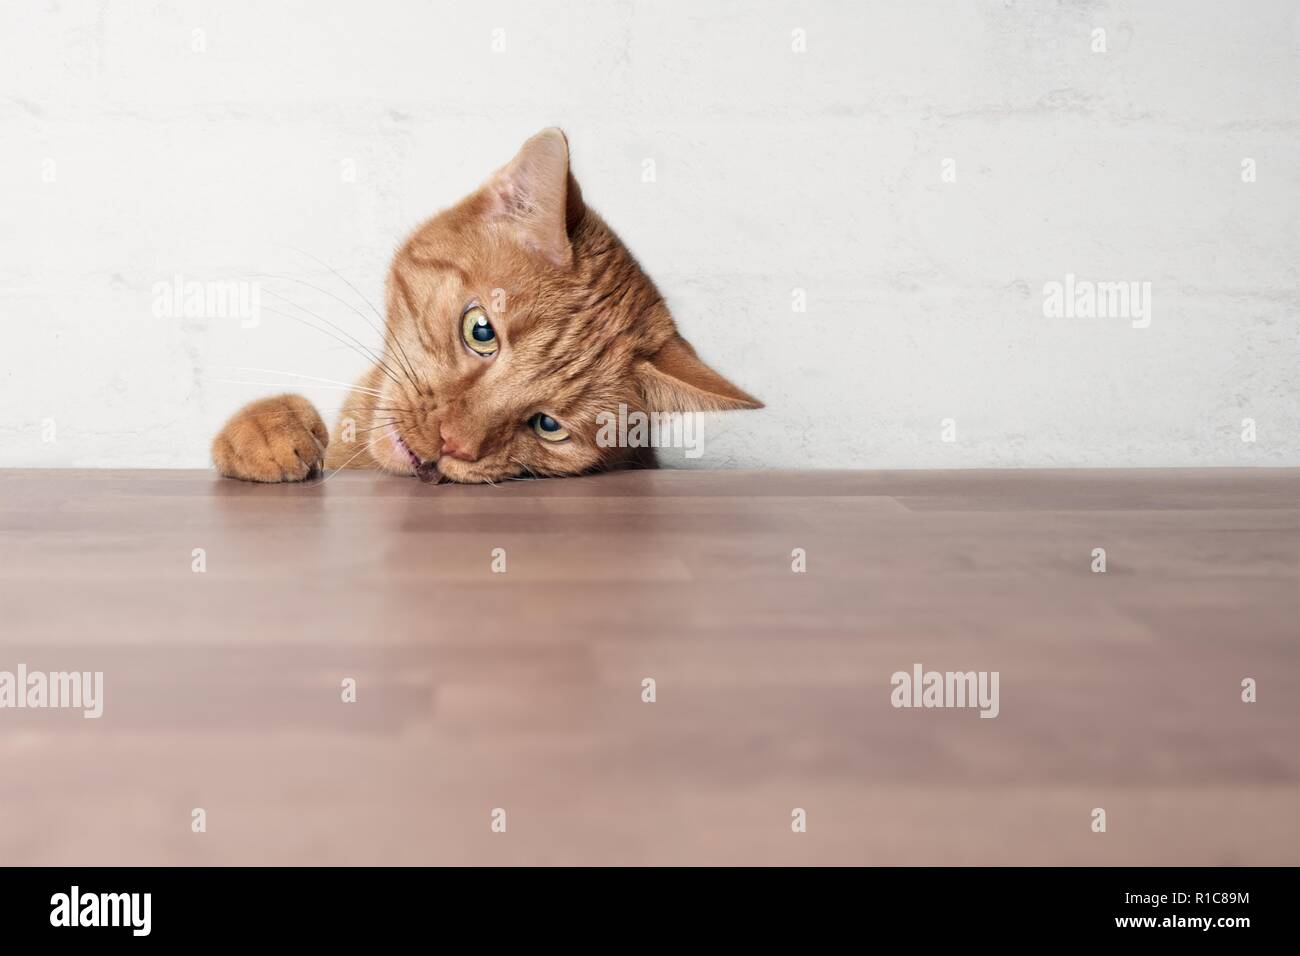 Naughty ginger cat stealing food from a table. - Stock Image